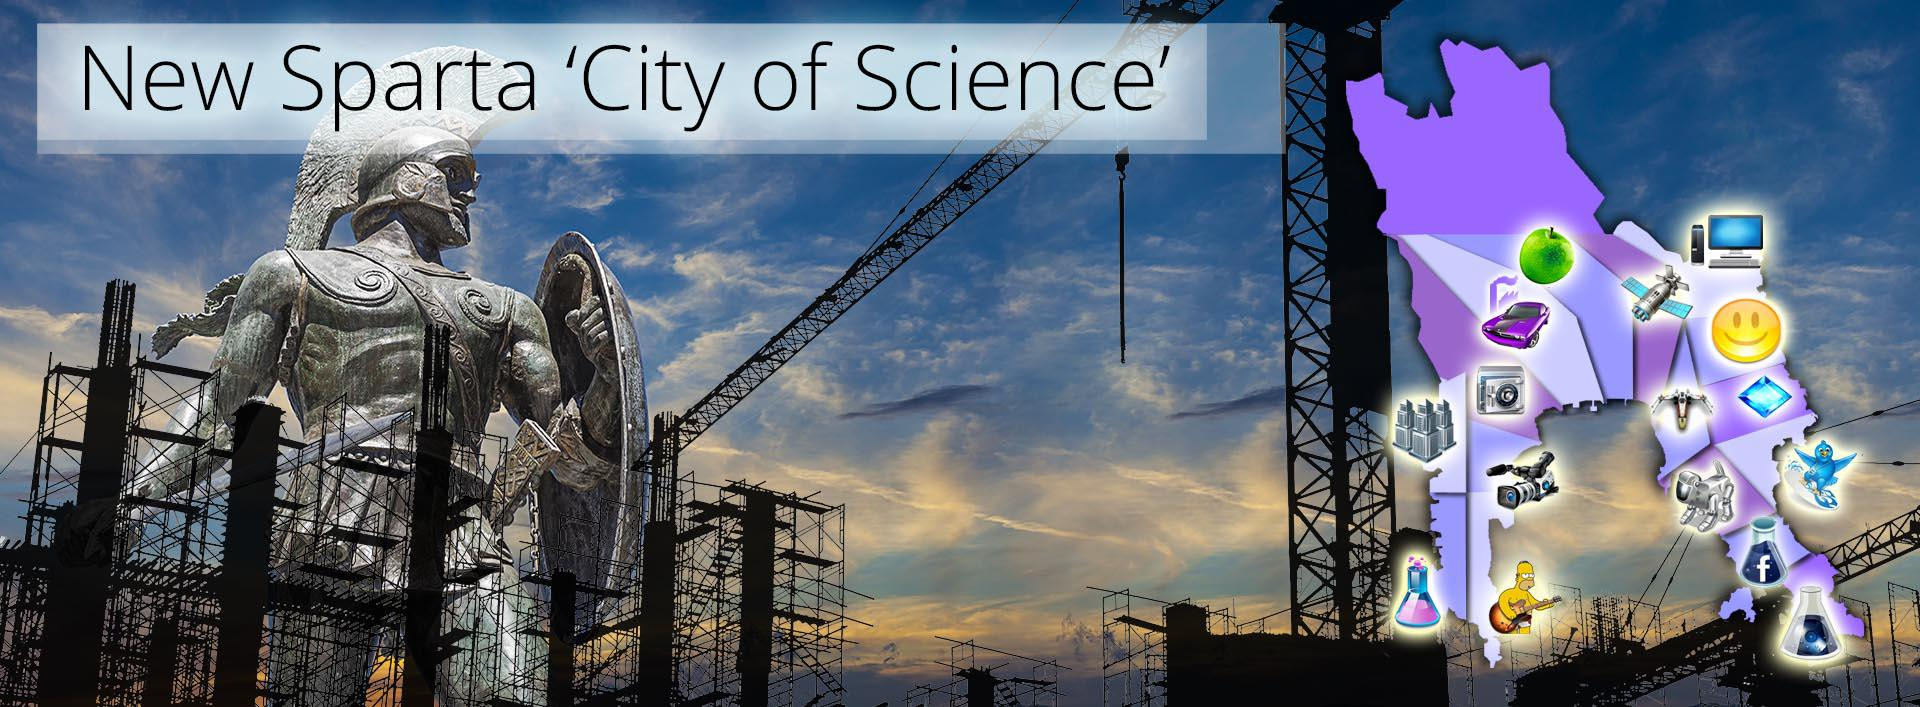 New Sparta City of Science